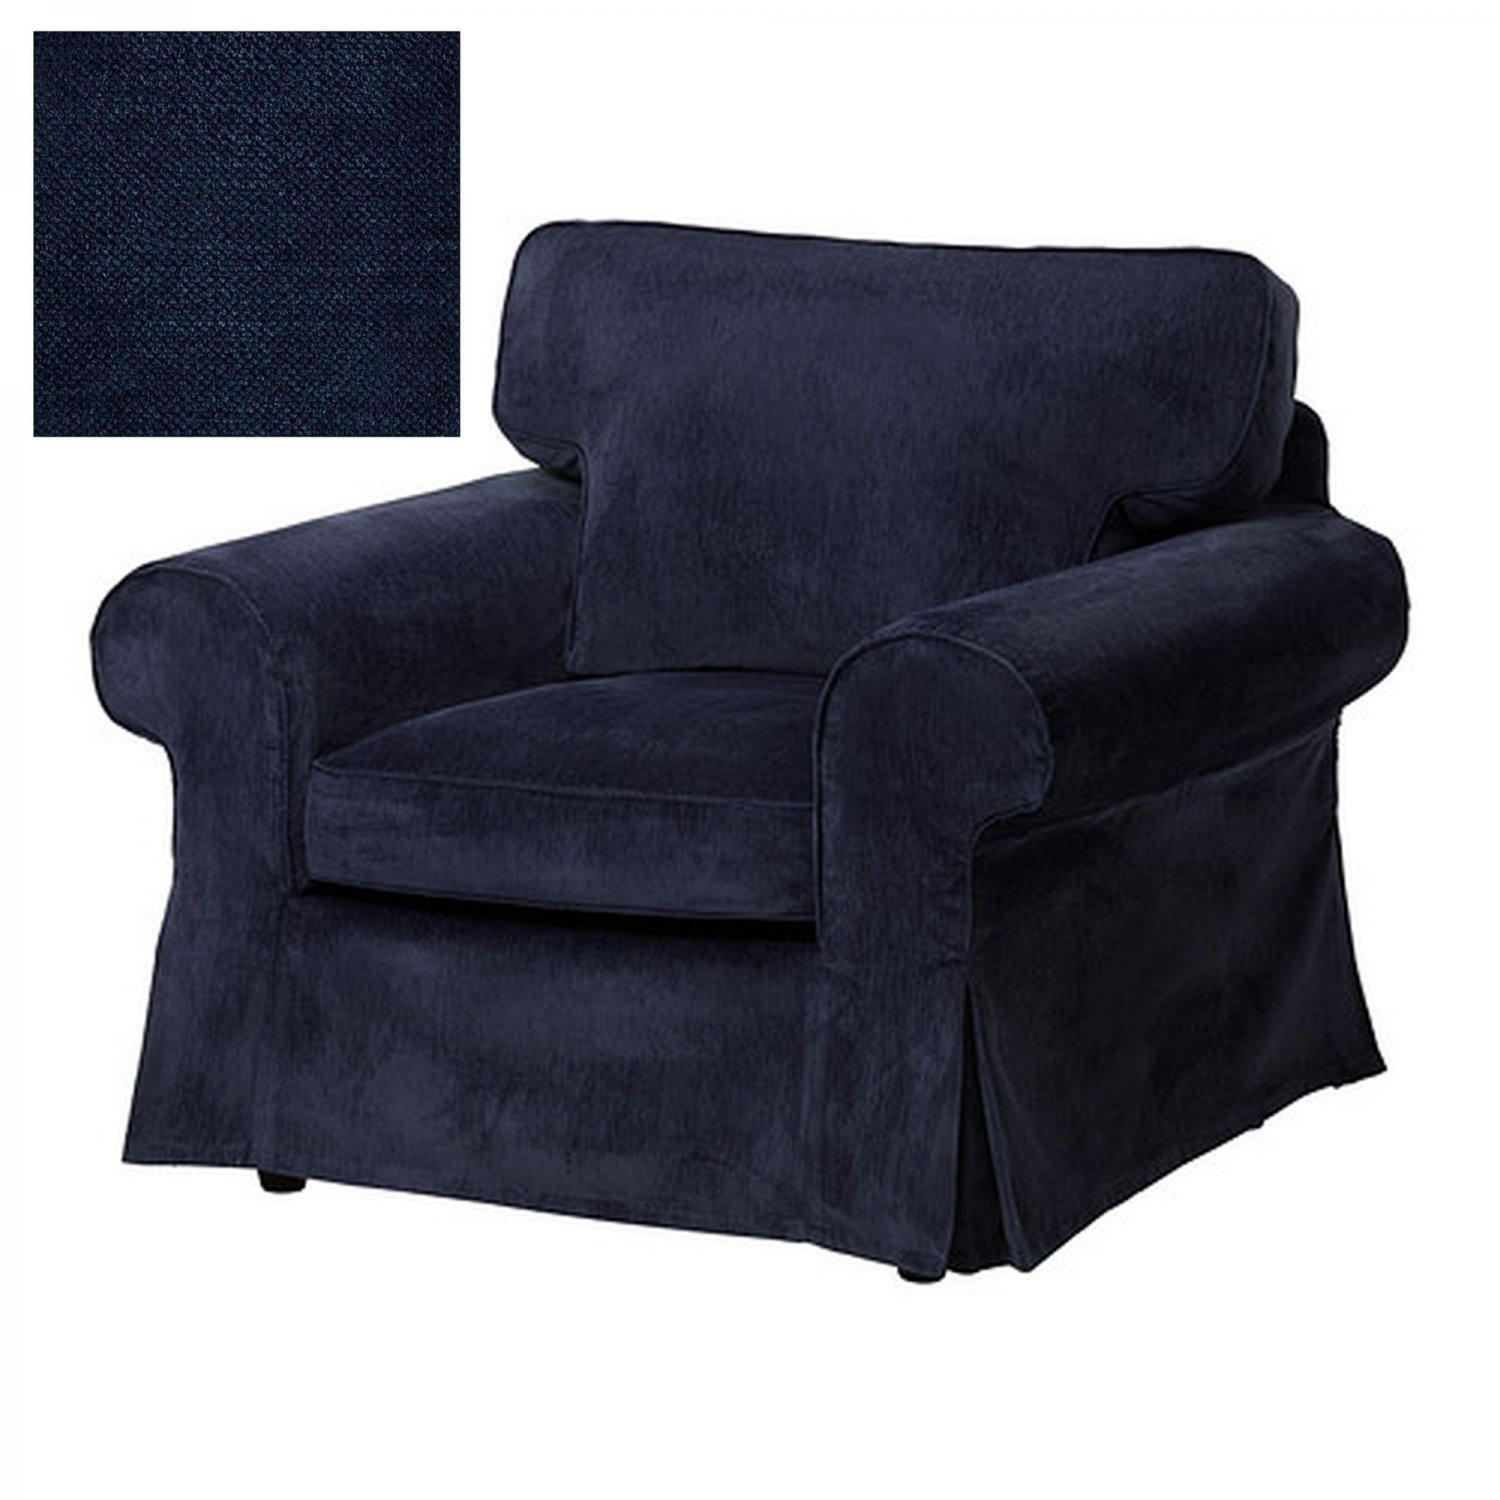 Ikea Ektorp Armchair Slipcover Chair Cover Vellinge Dark Blue